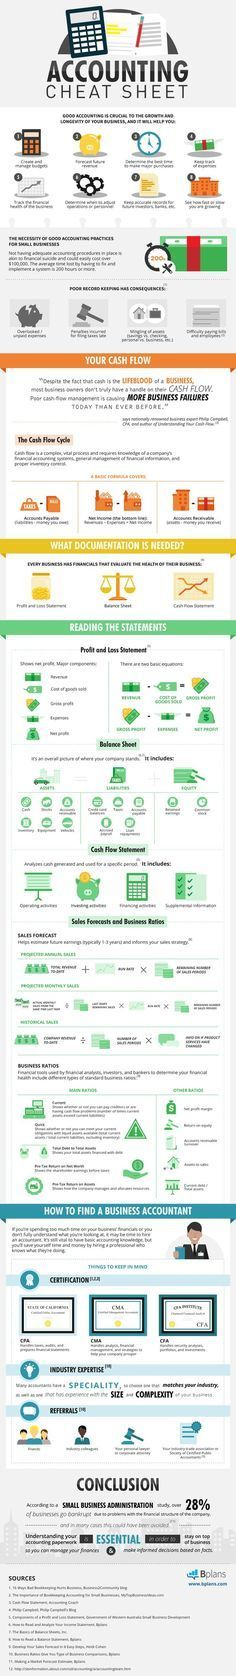 200 best Accounting and Finances for Small Business images on - free excel spreadsheet templates for small business